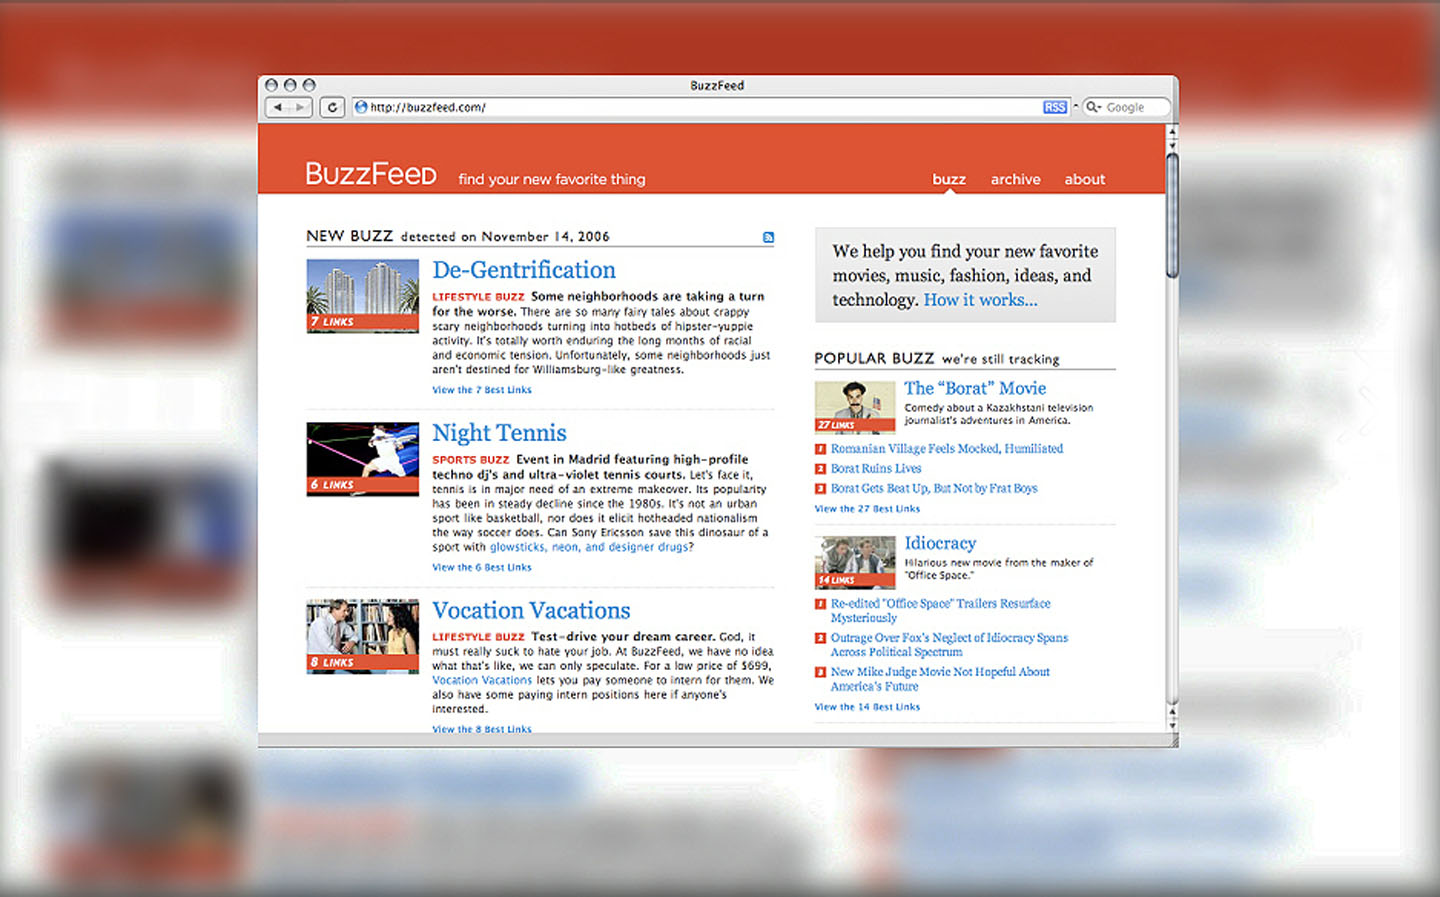 BuzzFeed's web face in 2006 was tame and conventional. That soon changed.